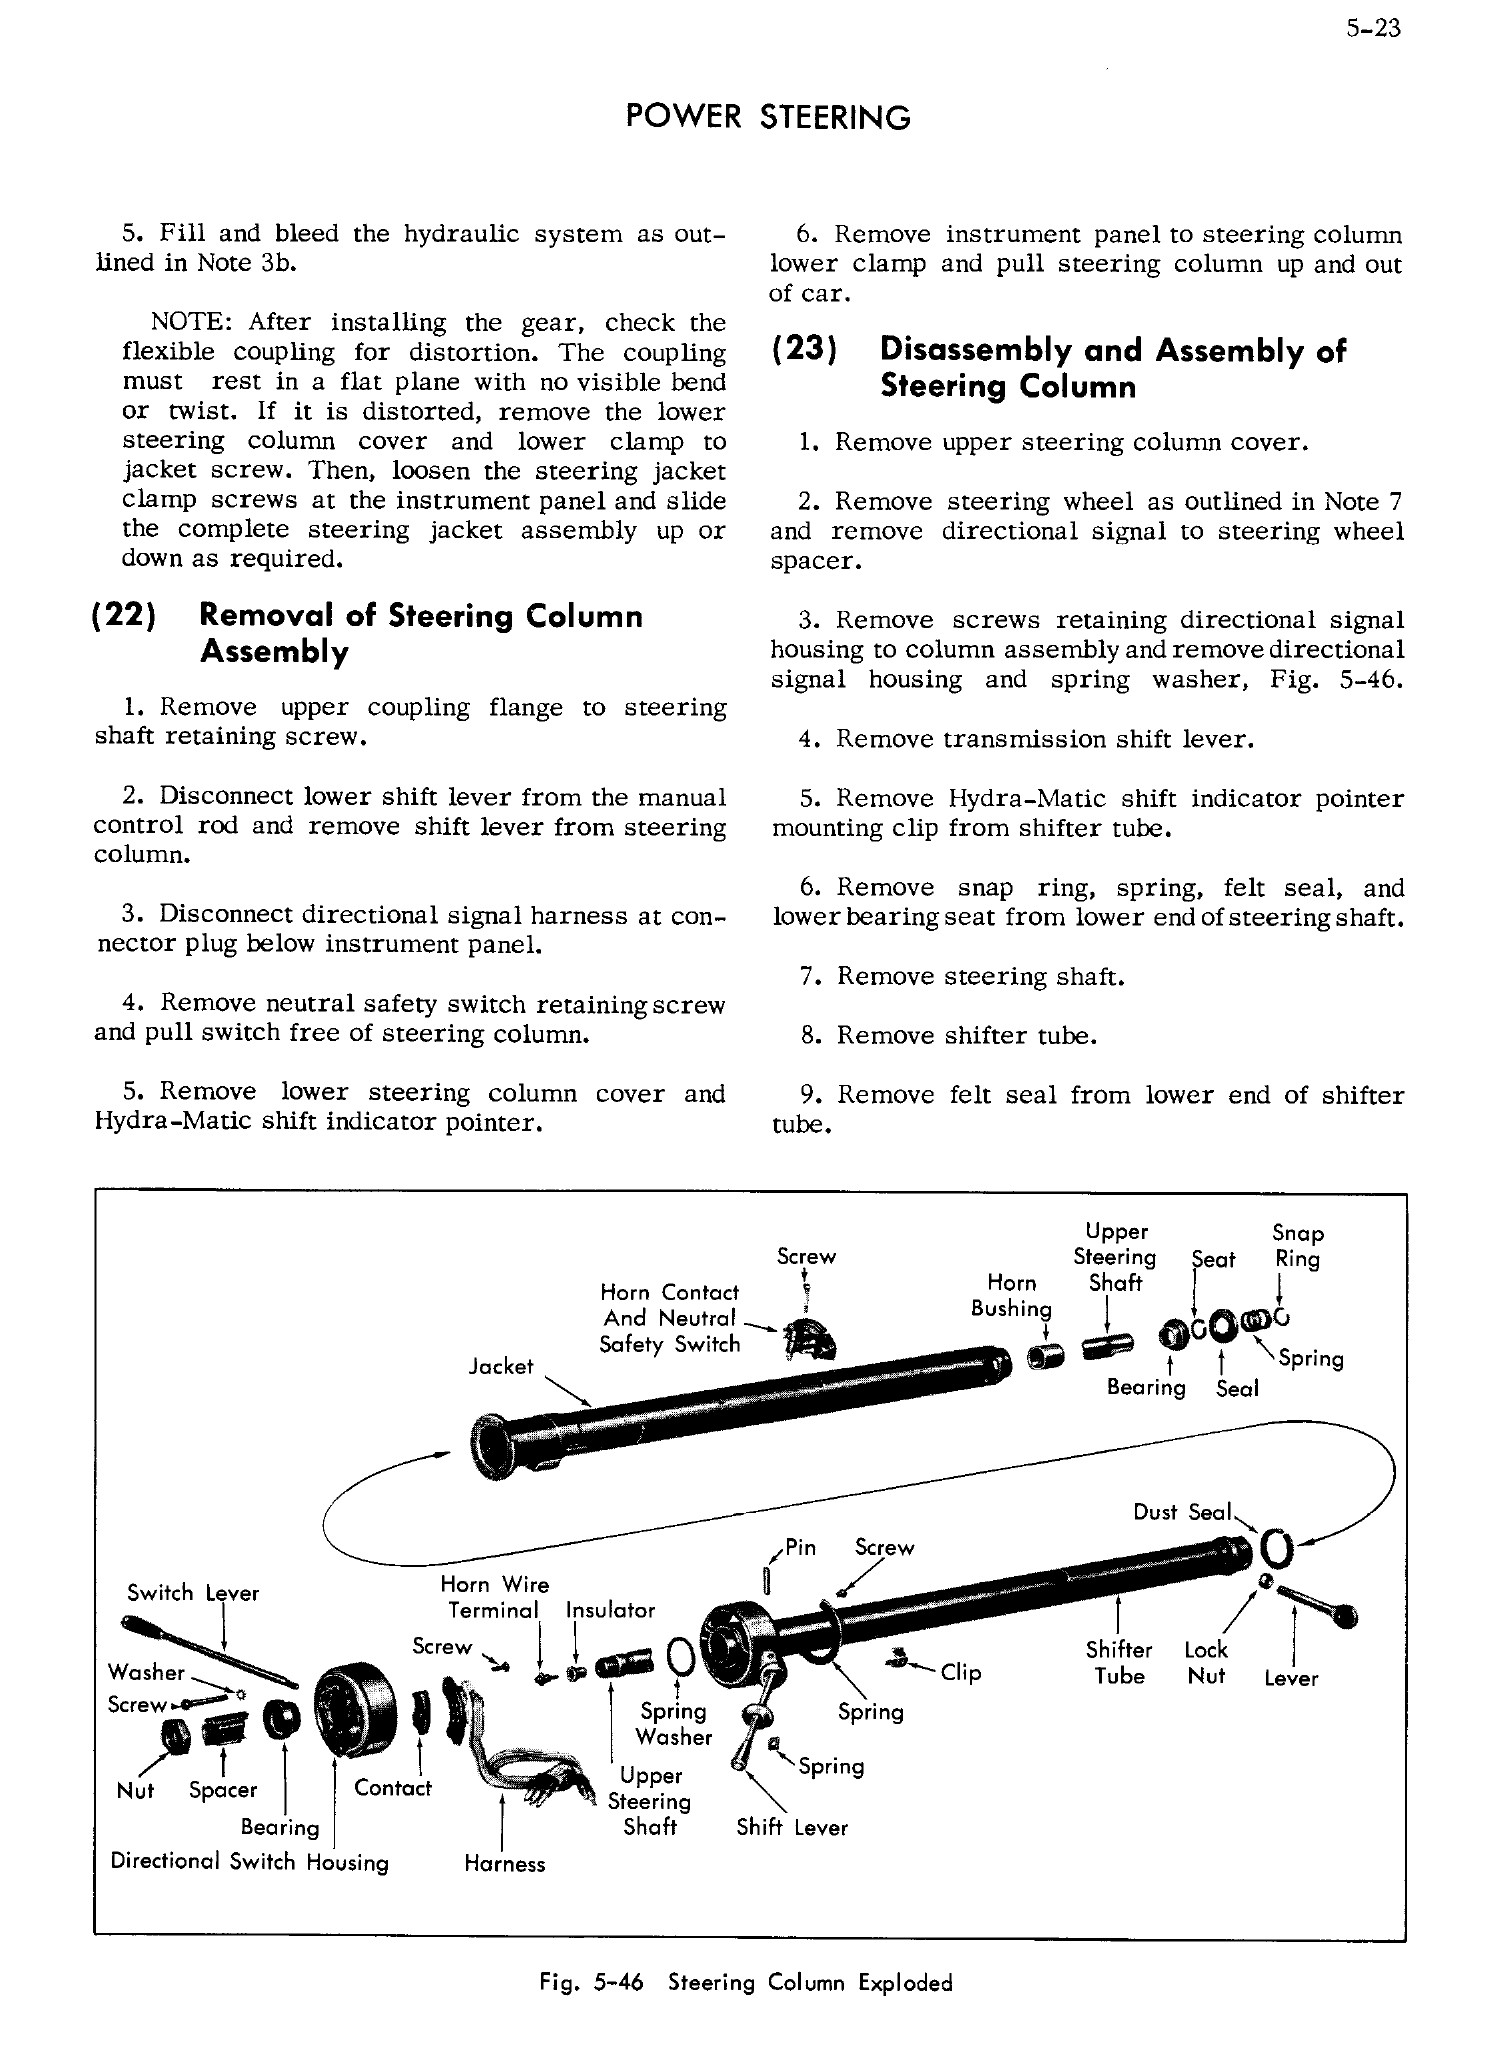 Cadillac Shop Manual Power Steering Page 23 Of 26